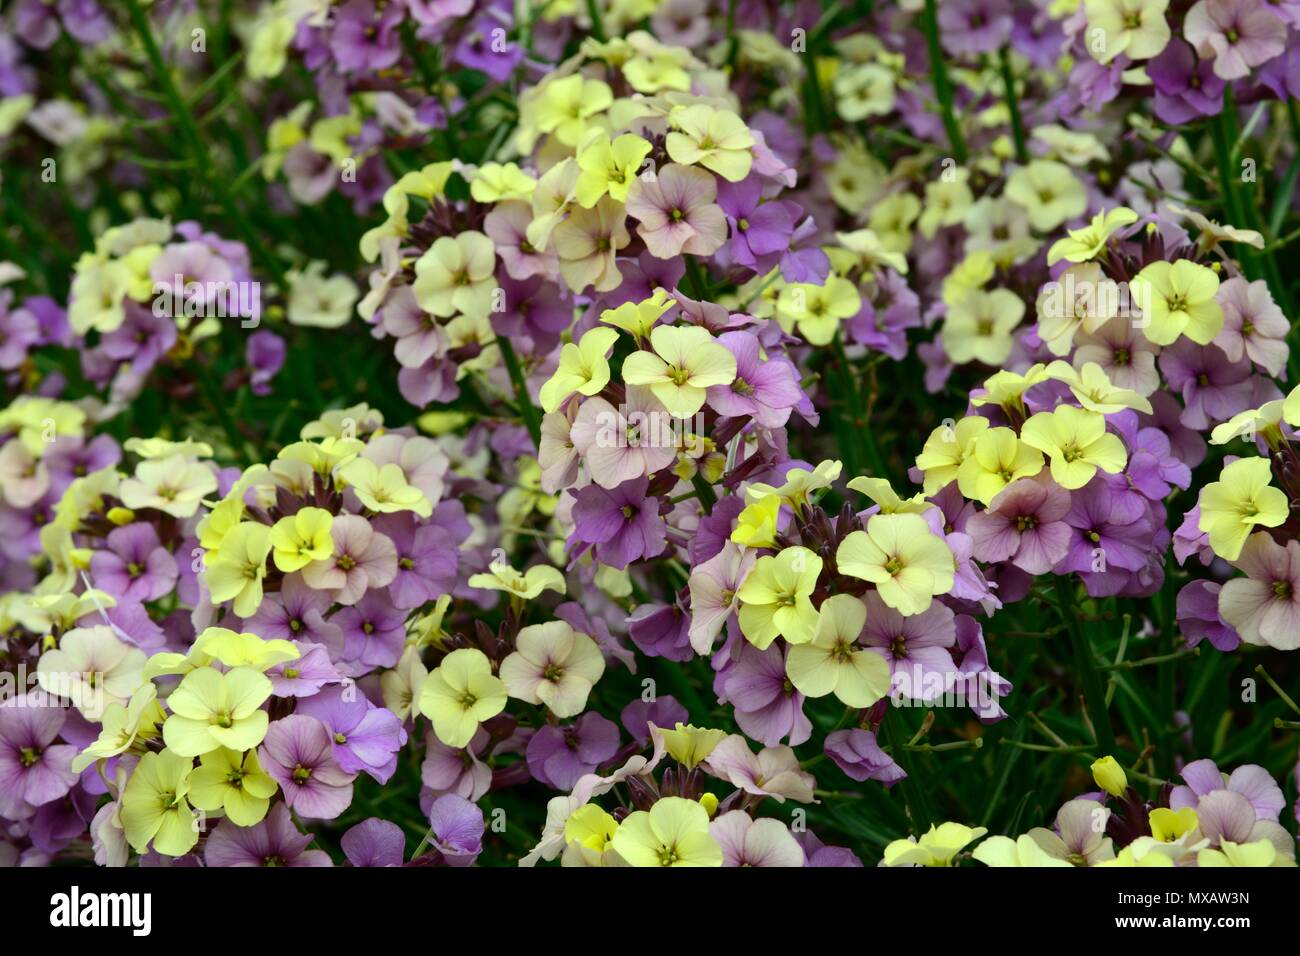 Erysimum Plant World Lemon perennial wallflower mauve purple yellow flowers - Stock Image